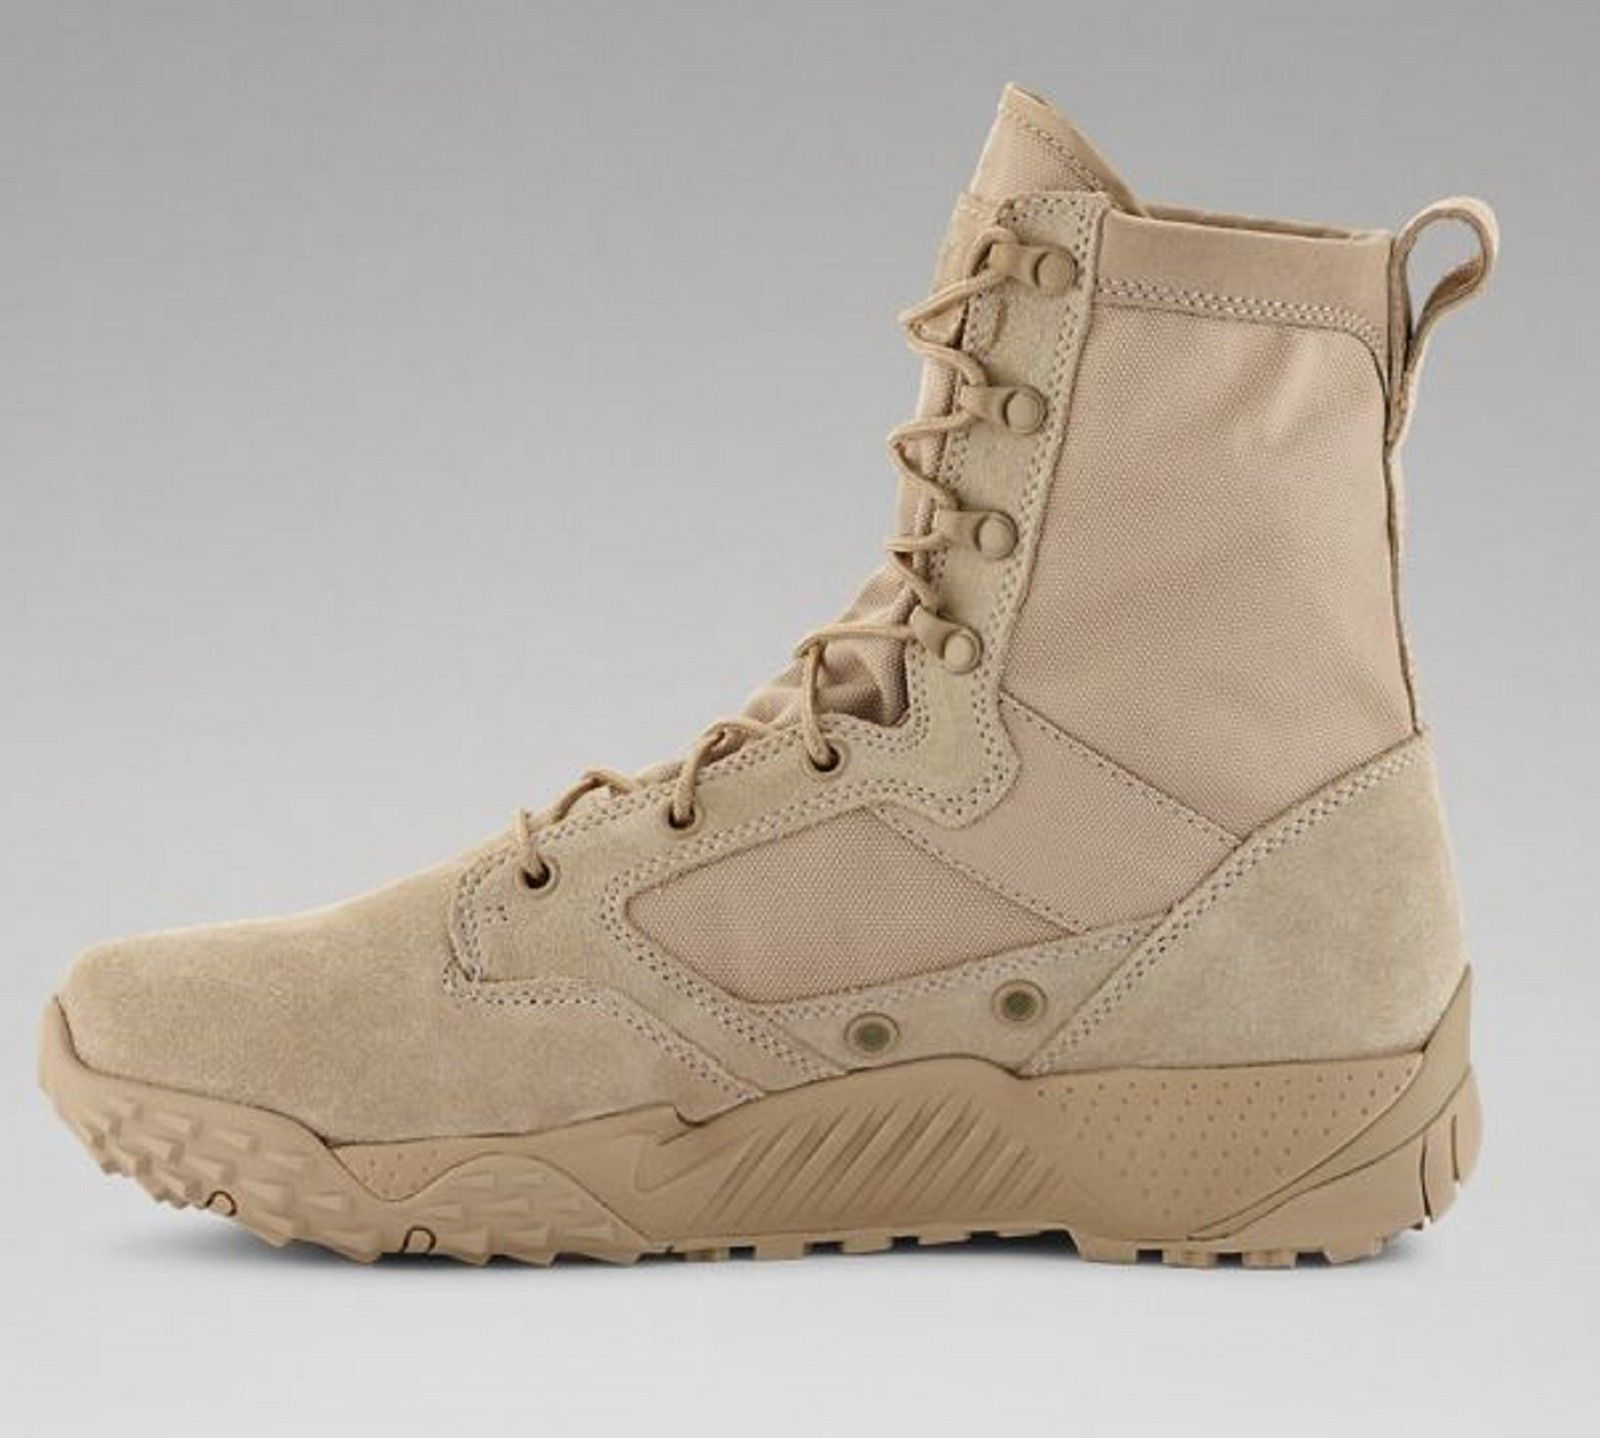 Under Armour Jungle Rat Tactical Boot - UA 8